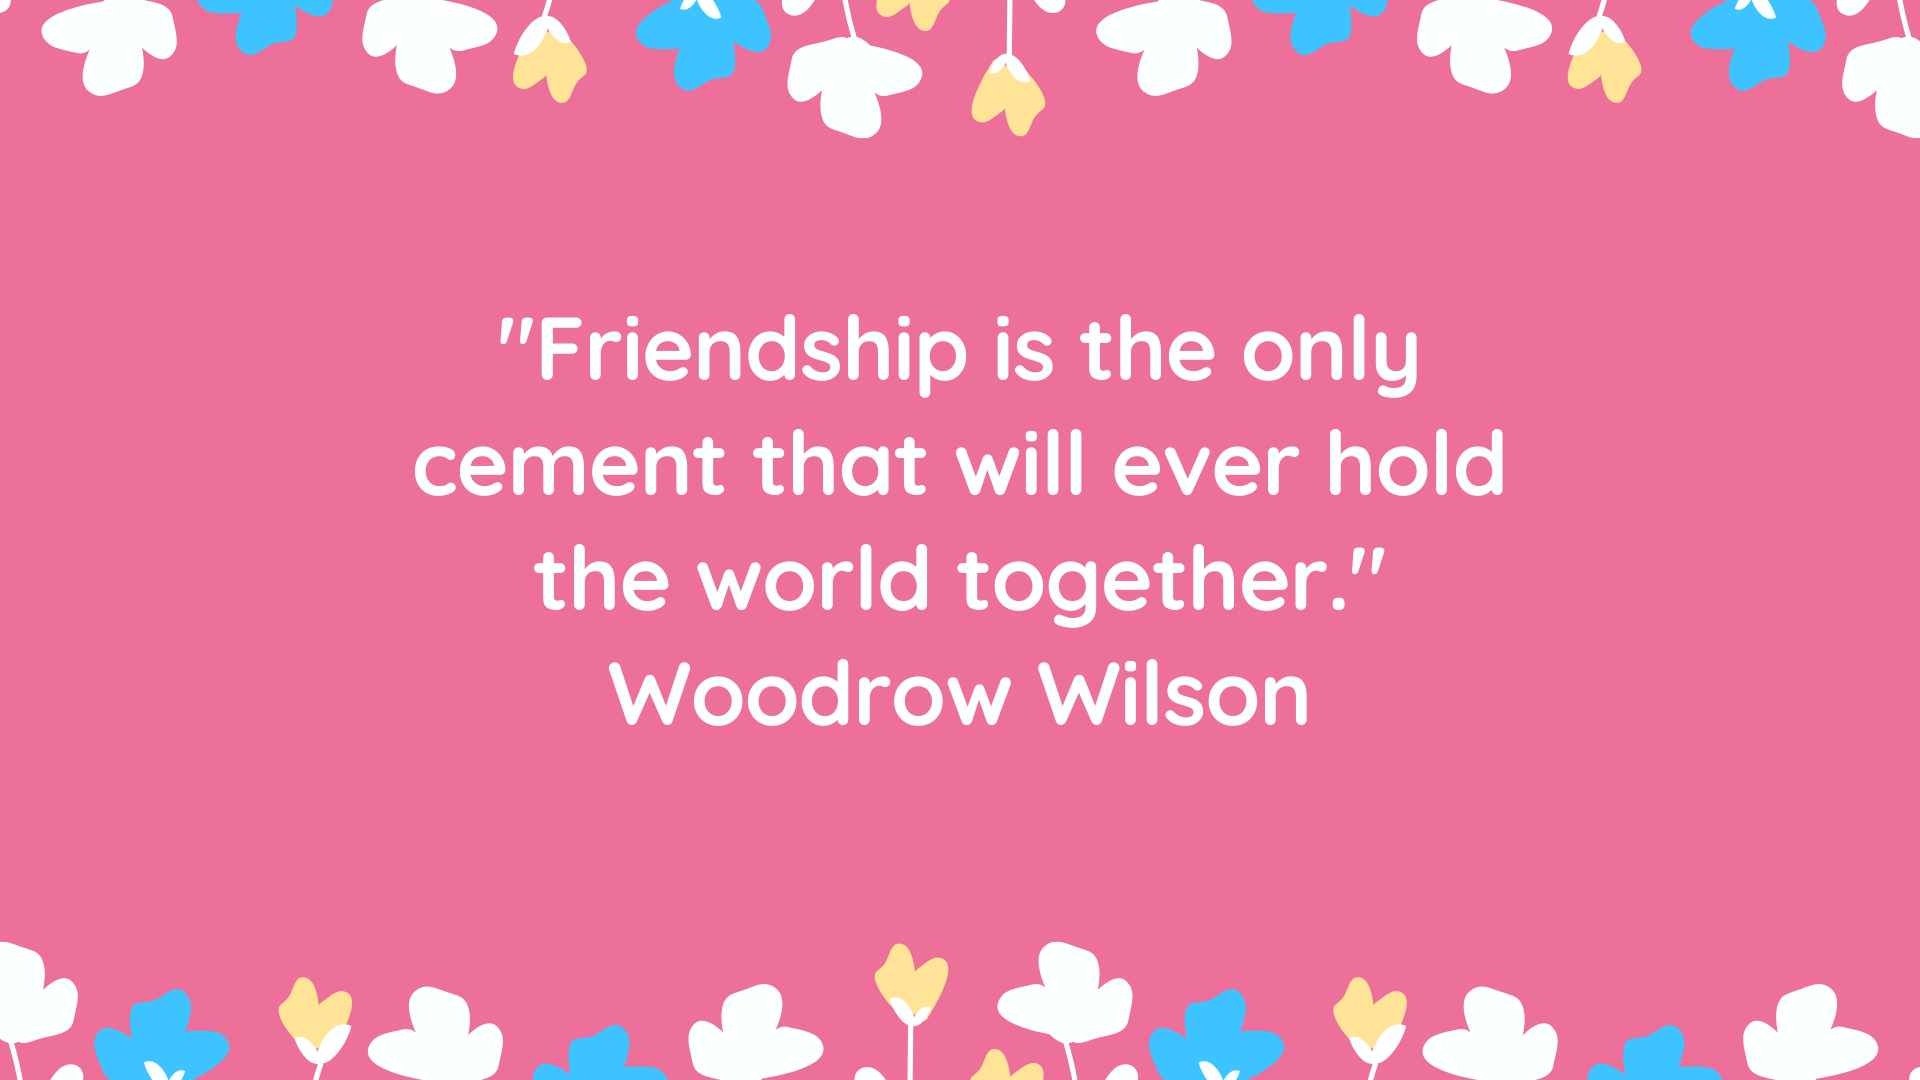 """Friendship is the only cement that will ever hold the world together."" Woodrow Wilson"